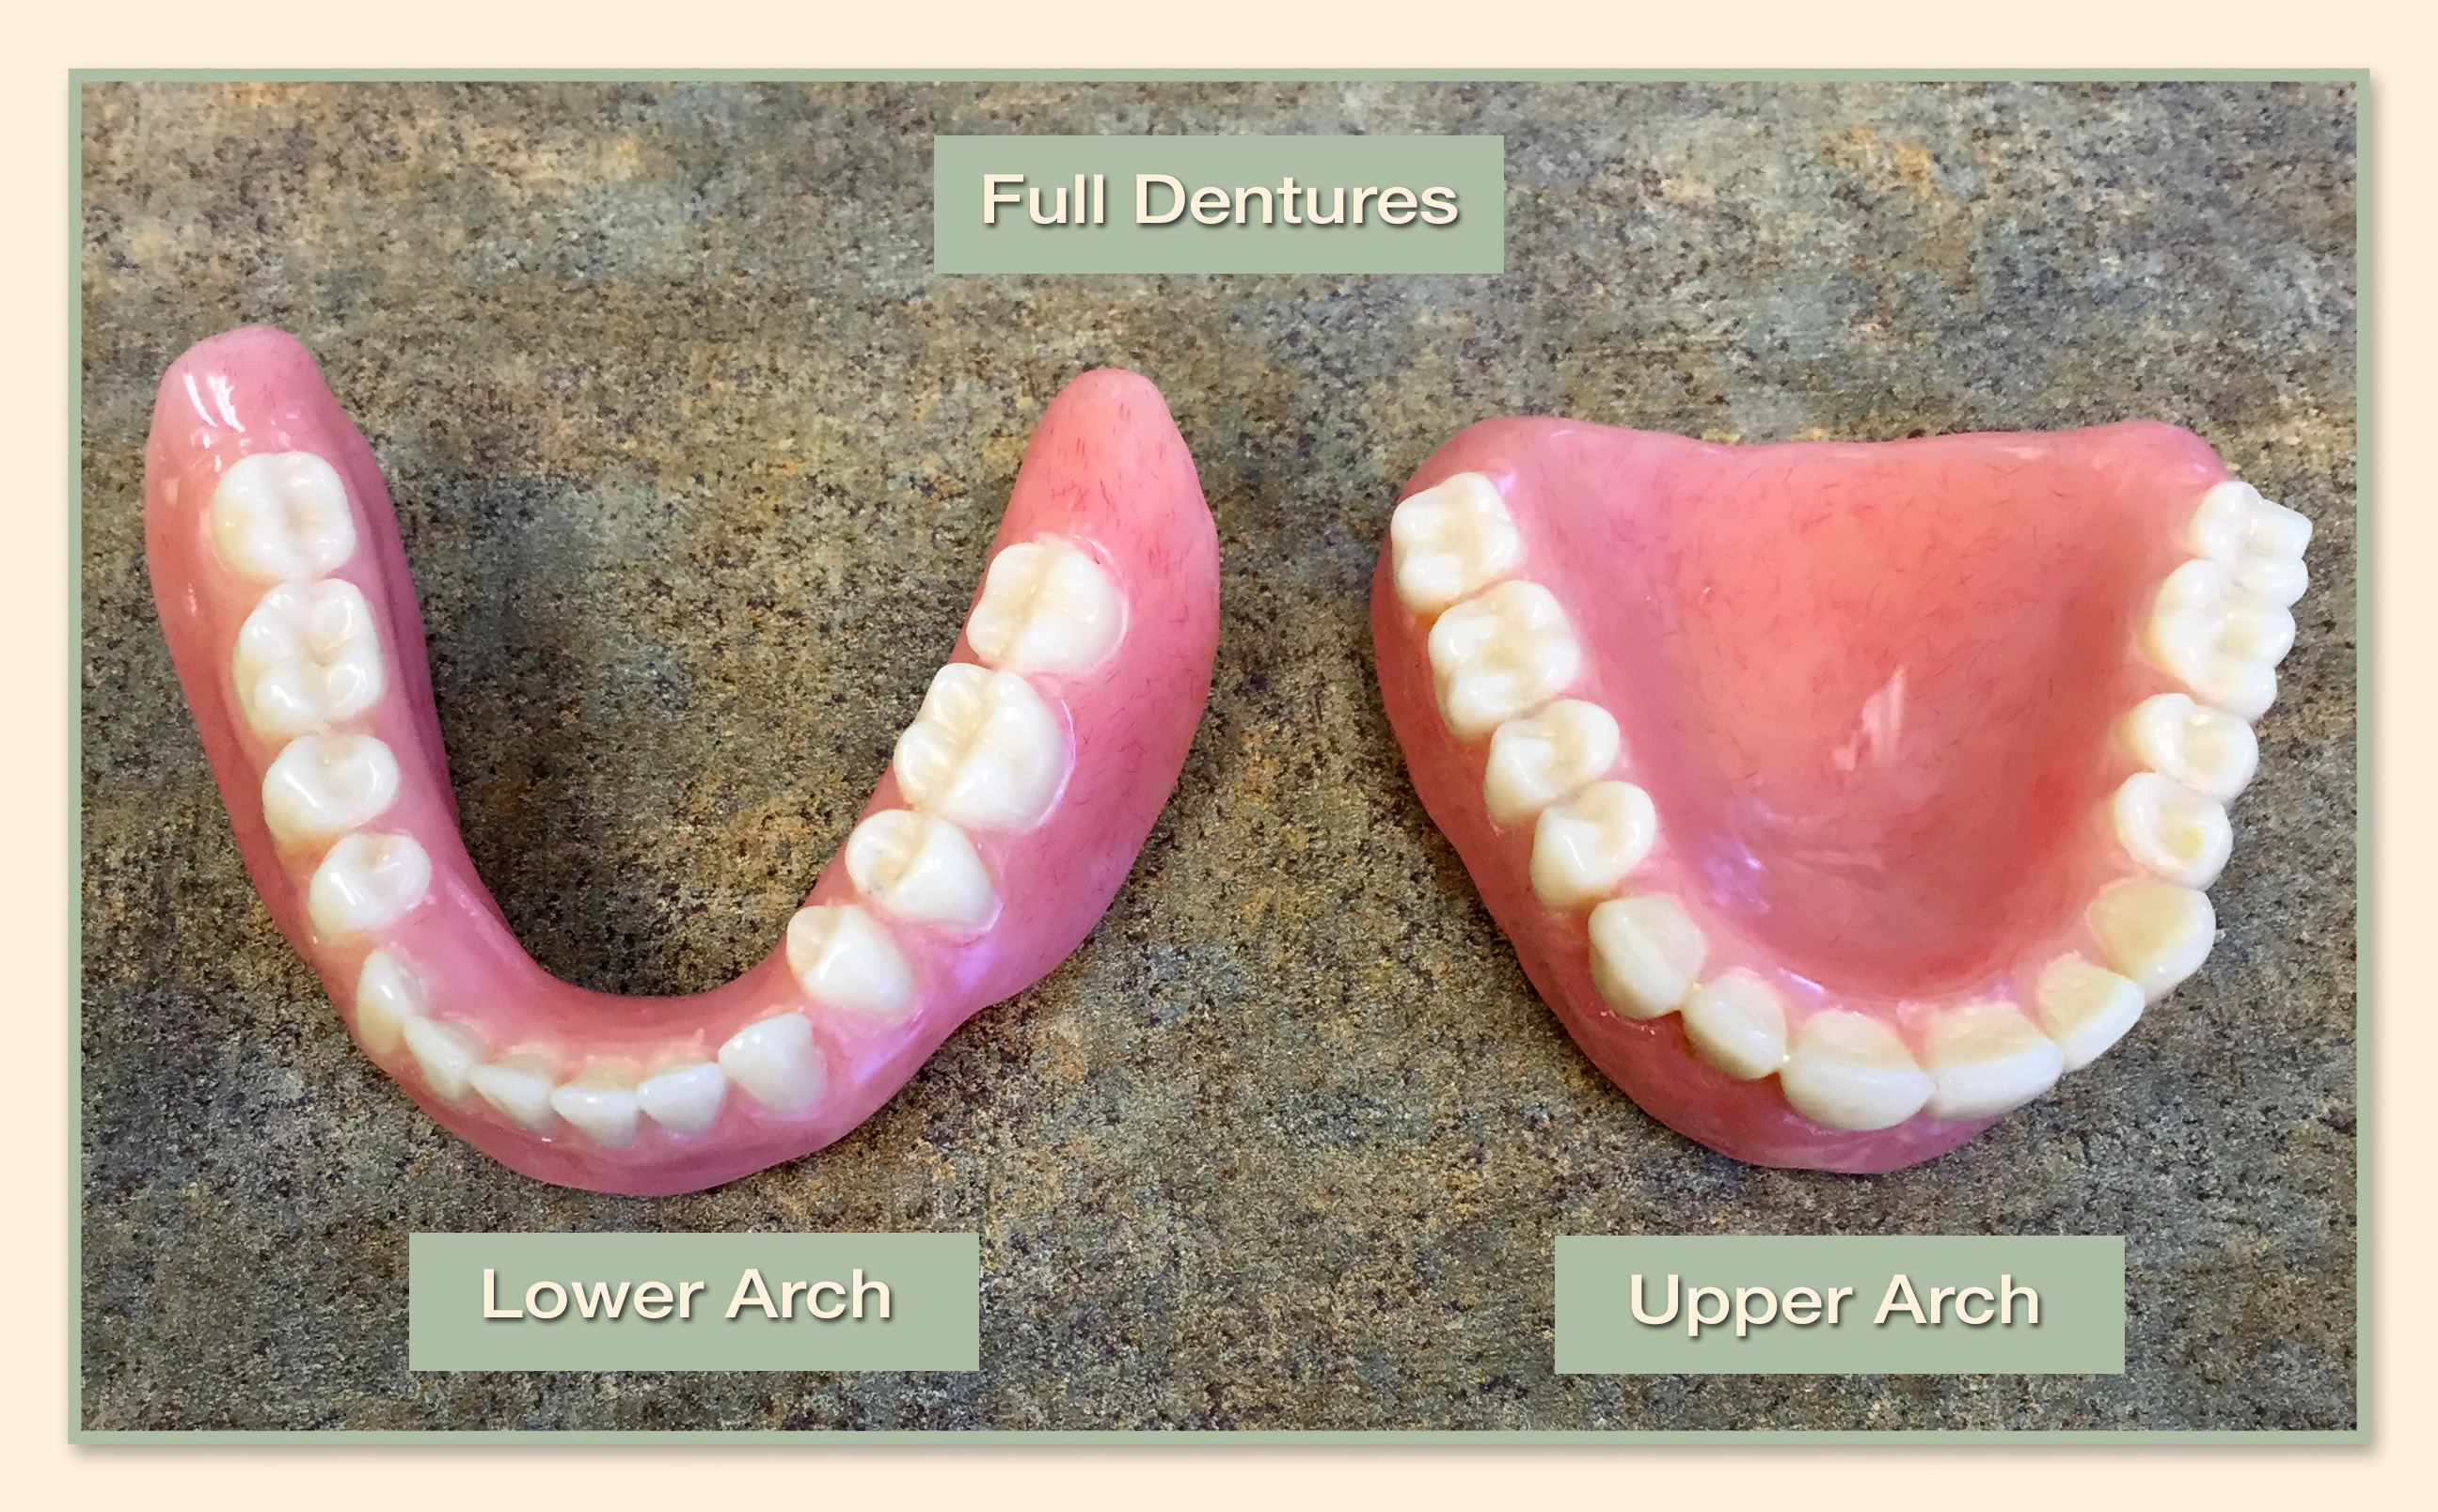 Family Dental Group - Full Dentures